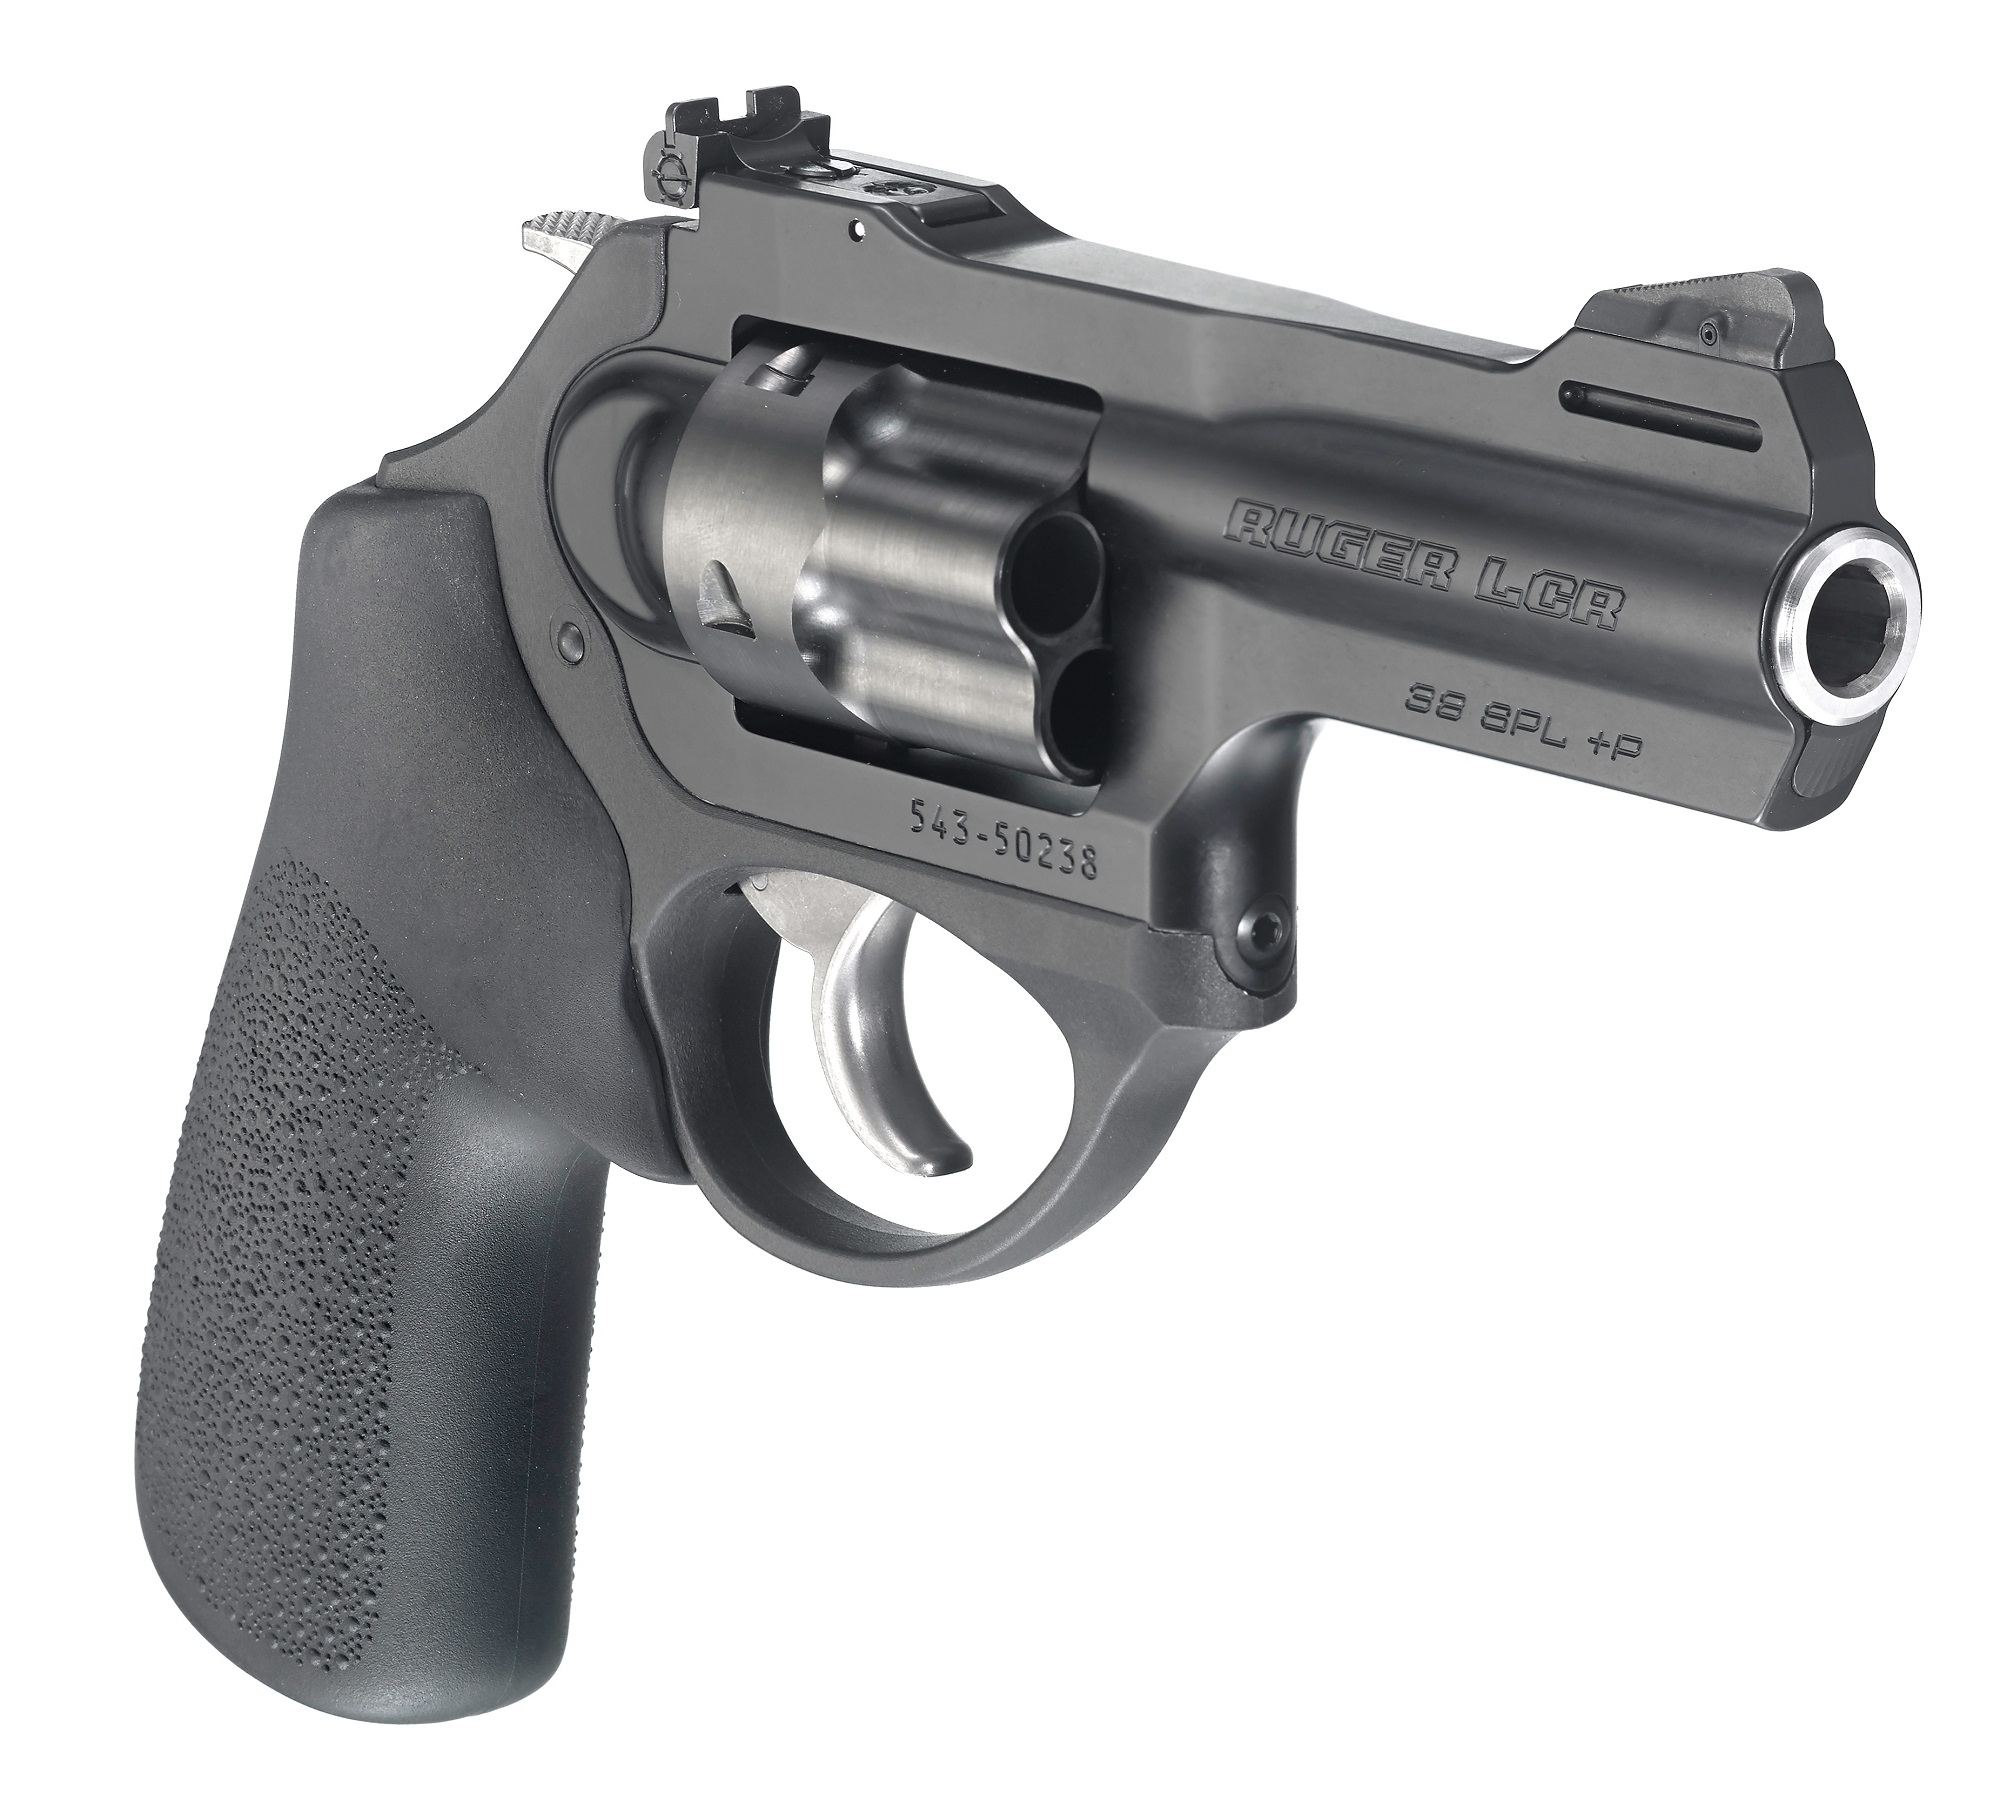 Ruger Lcrx Doubleaction Revolver With 3inch Barrel. Kitchen Cabinet Moldings And Trim. New Cabinets In Kitchen Cost. Lowes Kitchen Pantry Cabinet. High Cabinets For Kitchen. Depth Of Kitchen Cabinets. White Kitchen Cabinets Lowes. Kitchen Cabinet Building. New Kitchen Cabinet Ideas